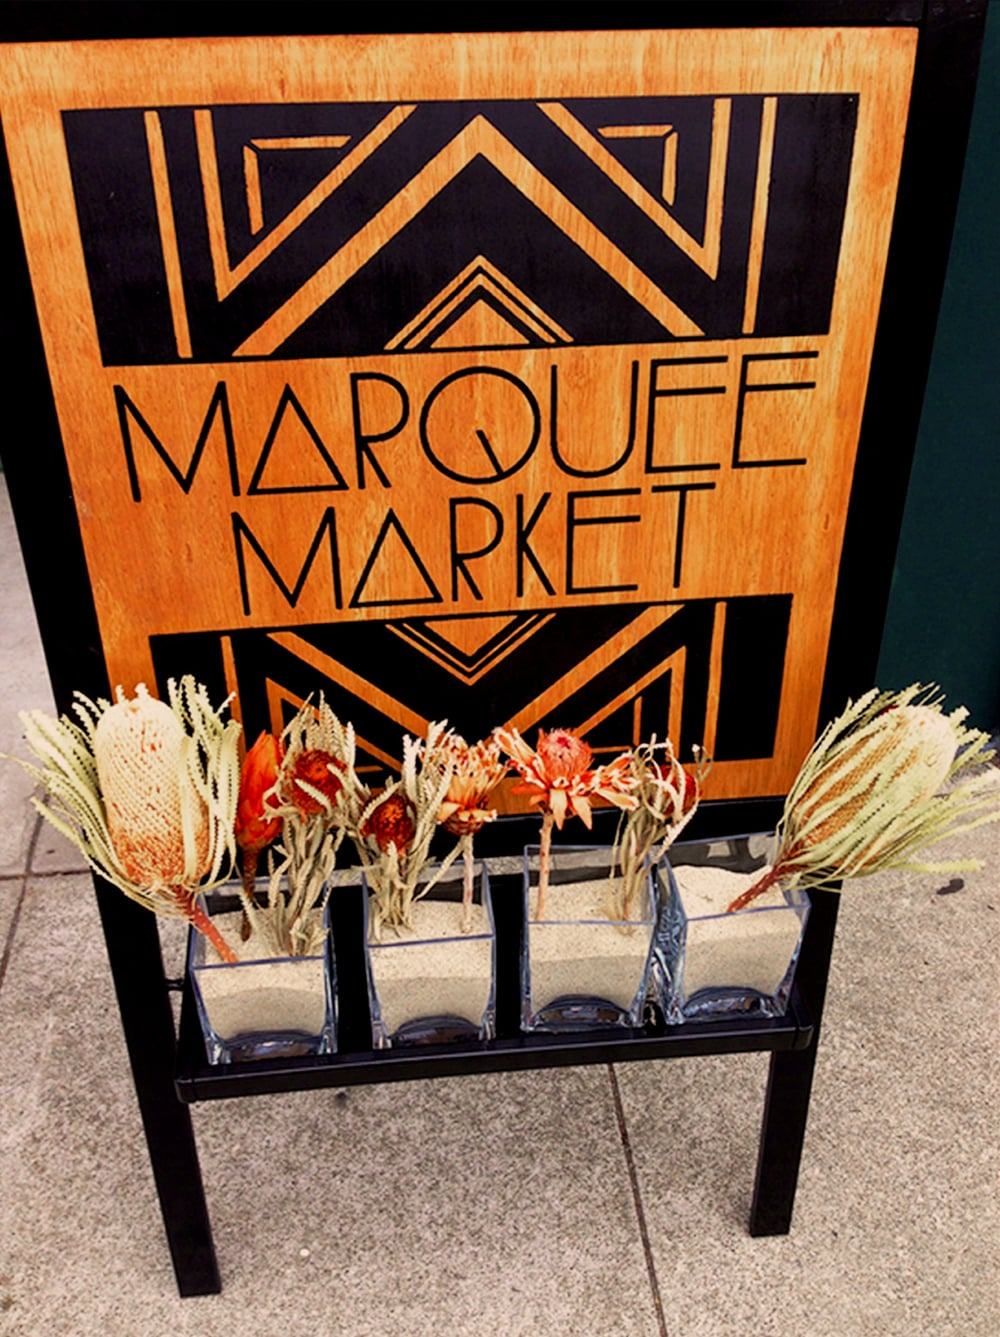 STARCADE DESIGNS & PRINT PRODUCTION FOR MARQUEE SALON / SCREEN-PRINTED DOUBLE-SIDED SIGNAGE FOR MARQUEE MARKET  .